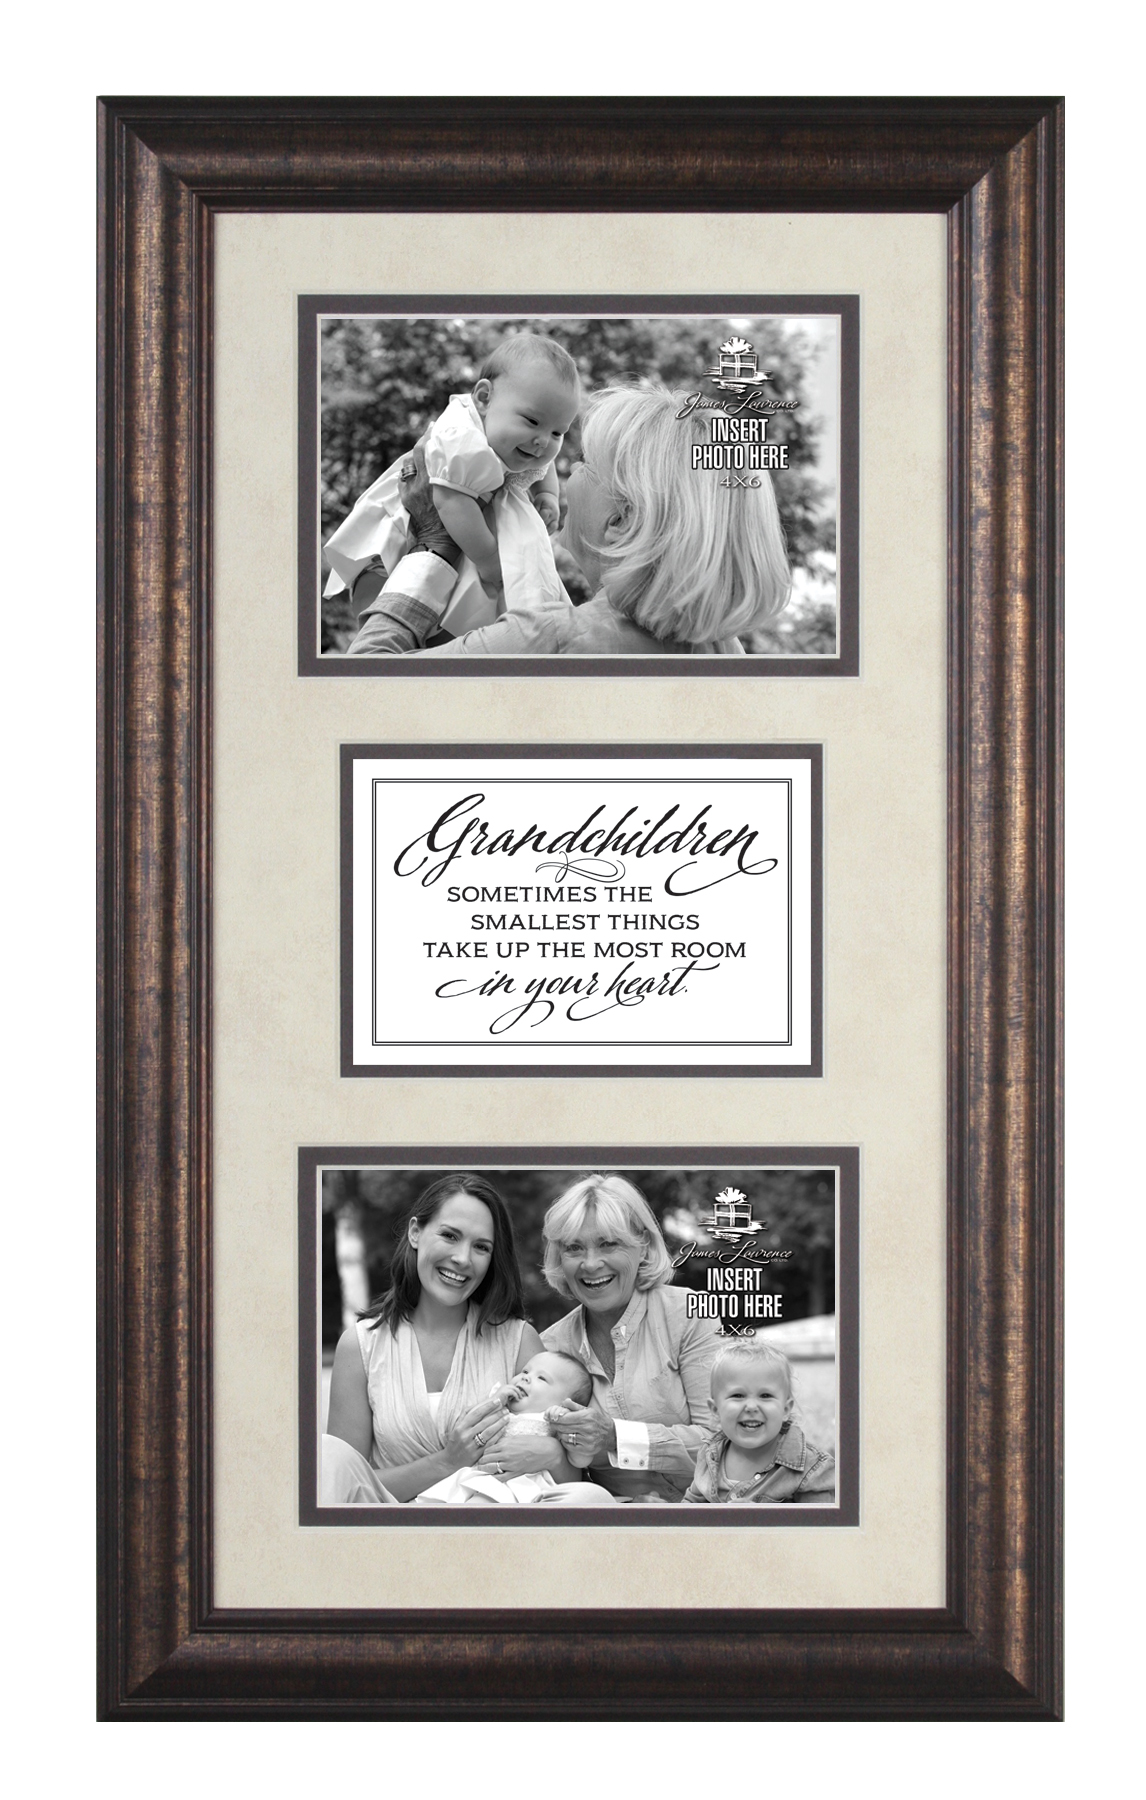 Grandchildren Photo Frame with Verse framed picture, inspirational message, home decor, wall decor, framed art, words of grace, 2623